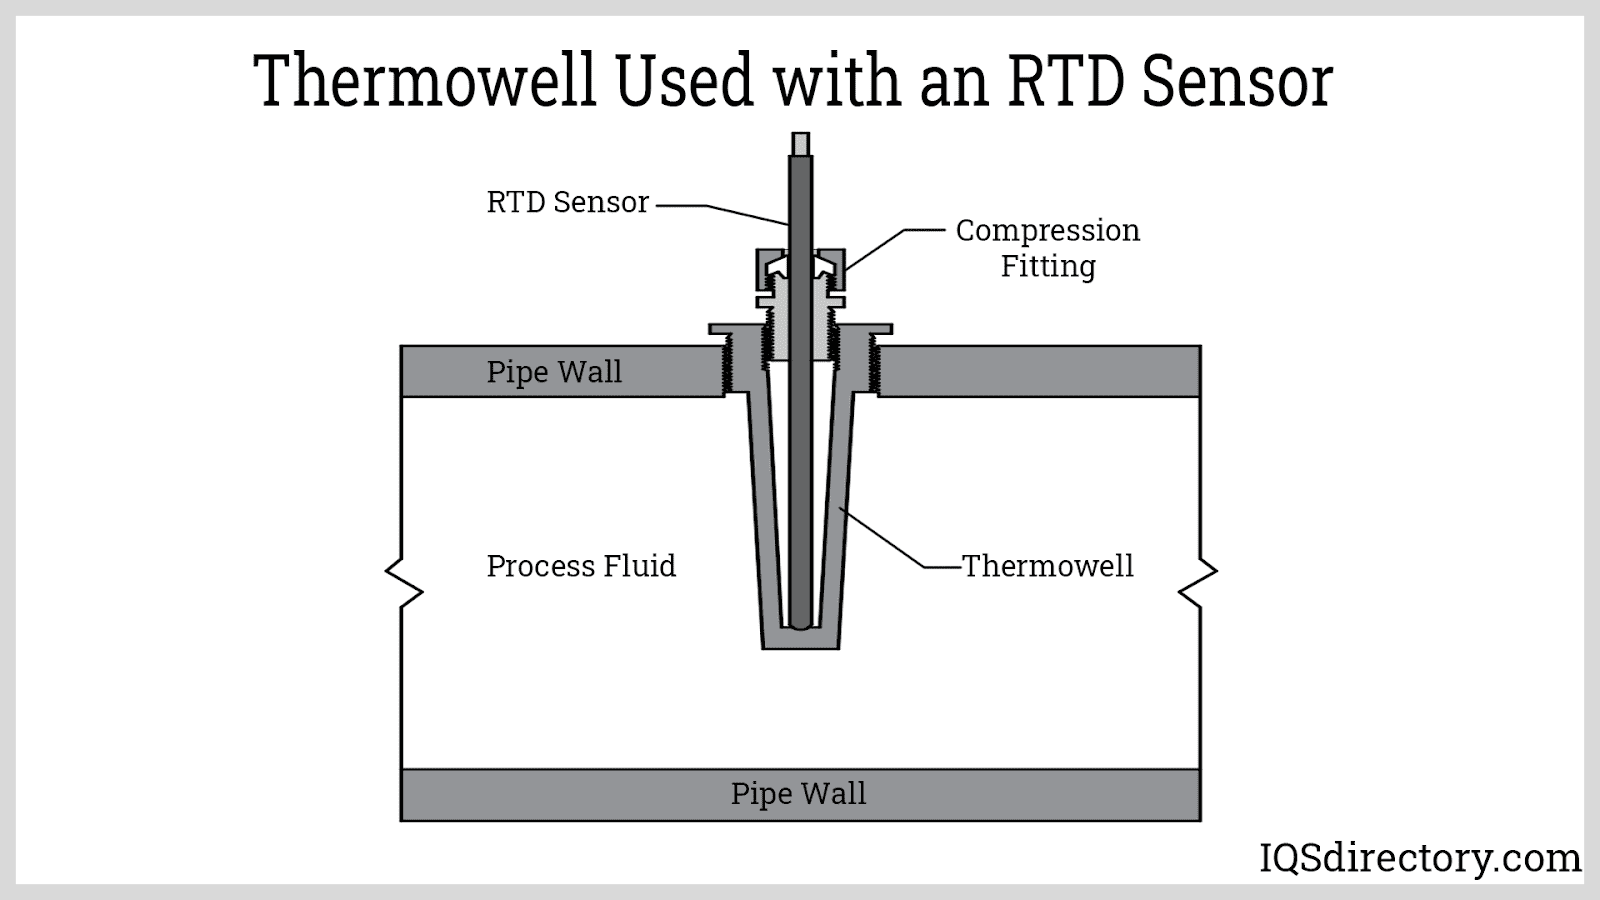 Thermowell Used with an RTD Sensor